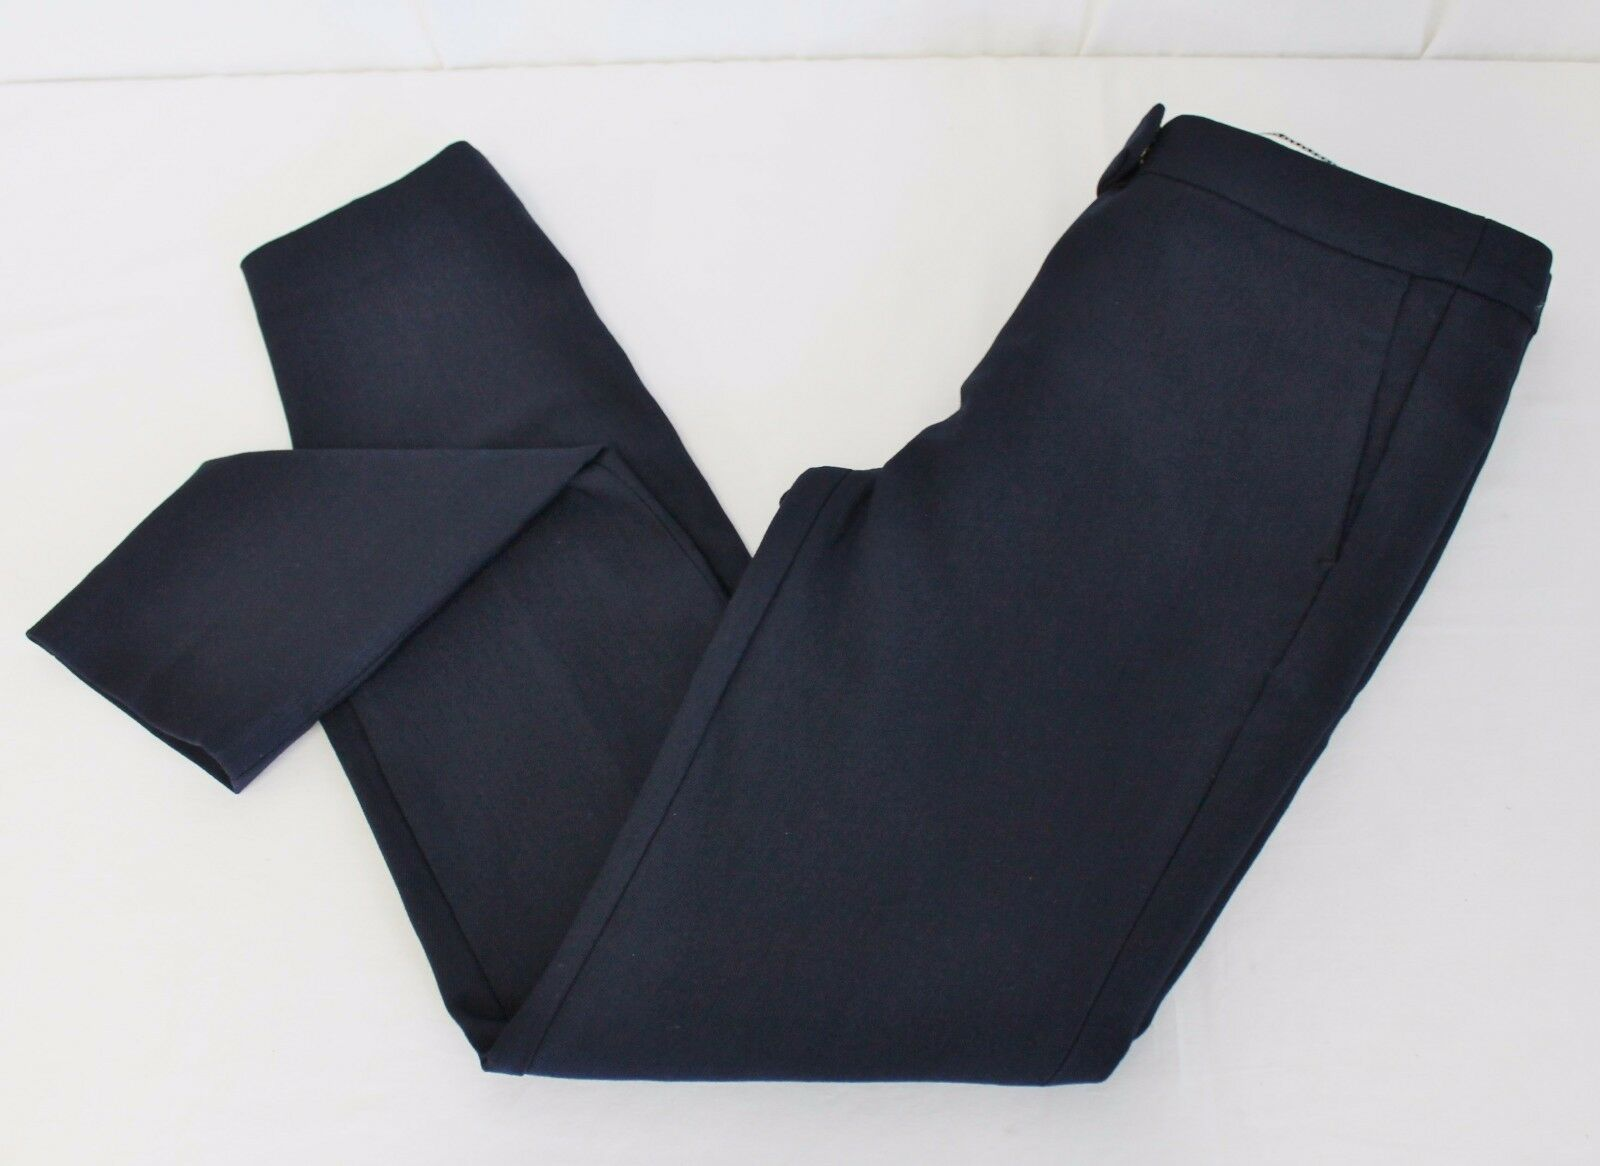 J CREW PETITE RYDER PANT STRETCH WITH SKINNY LEG NAVY SIZE 0 PETITE NEW C2759